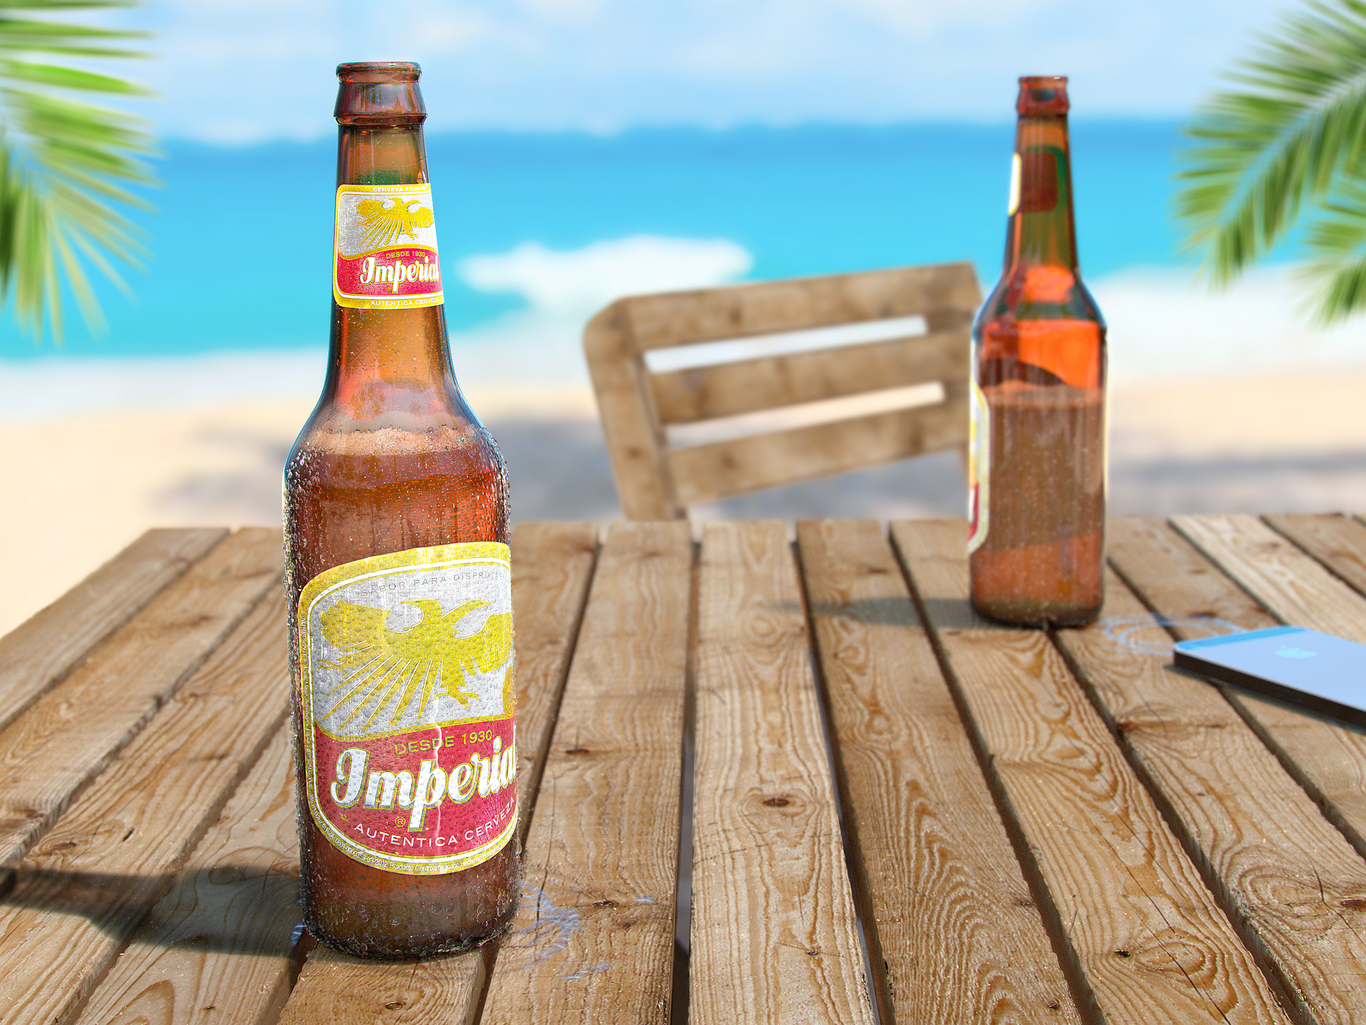 Belifant beer on the beach 1 d3057189 7vhb